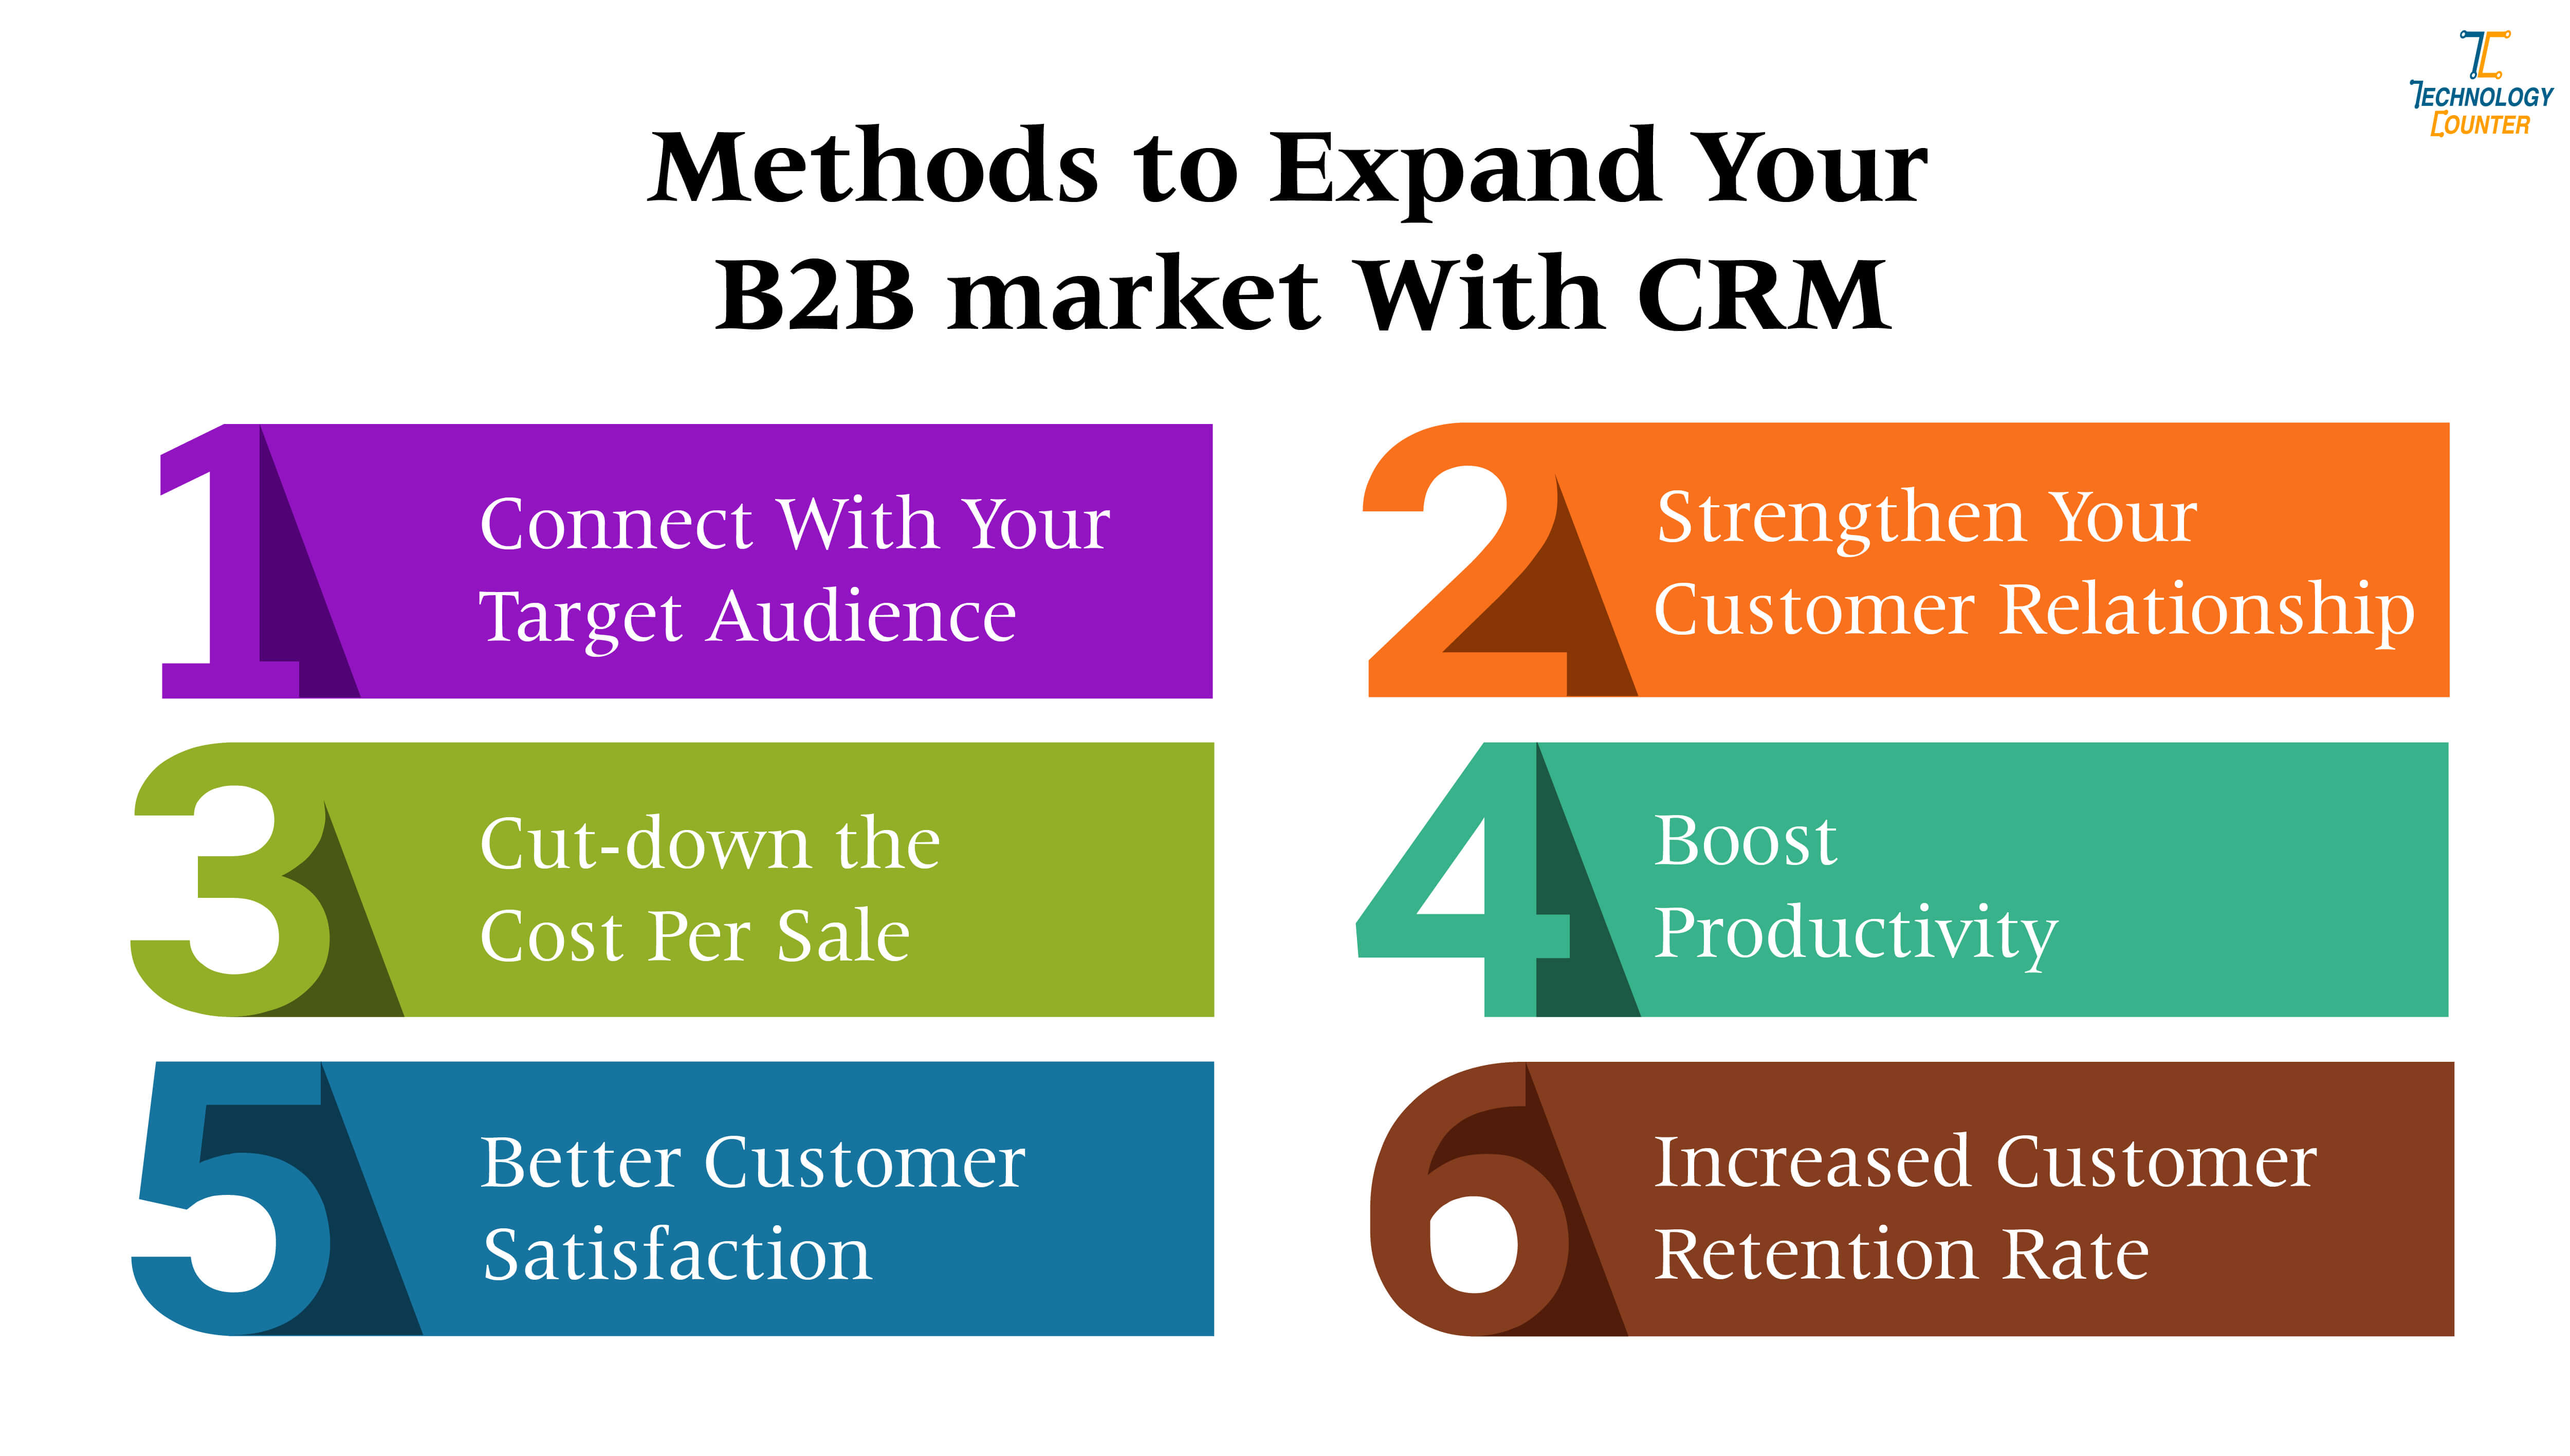 Methods to expand your b2b market with crm